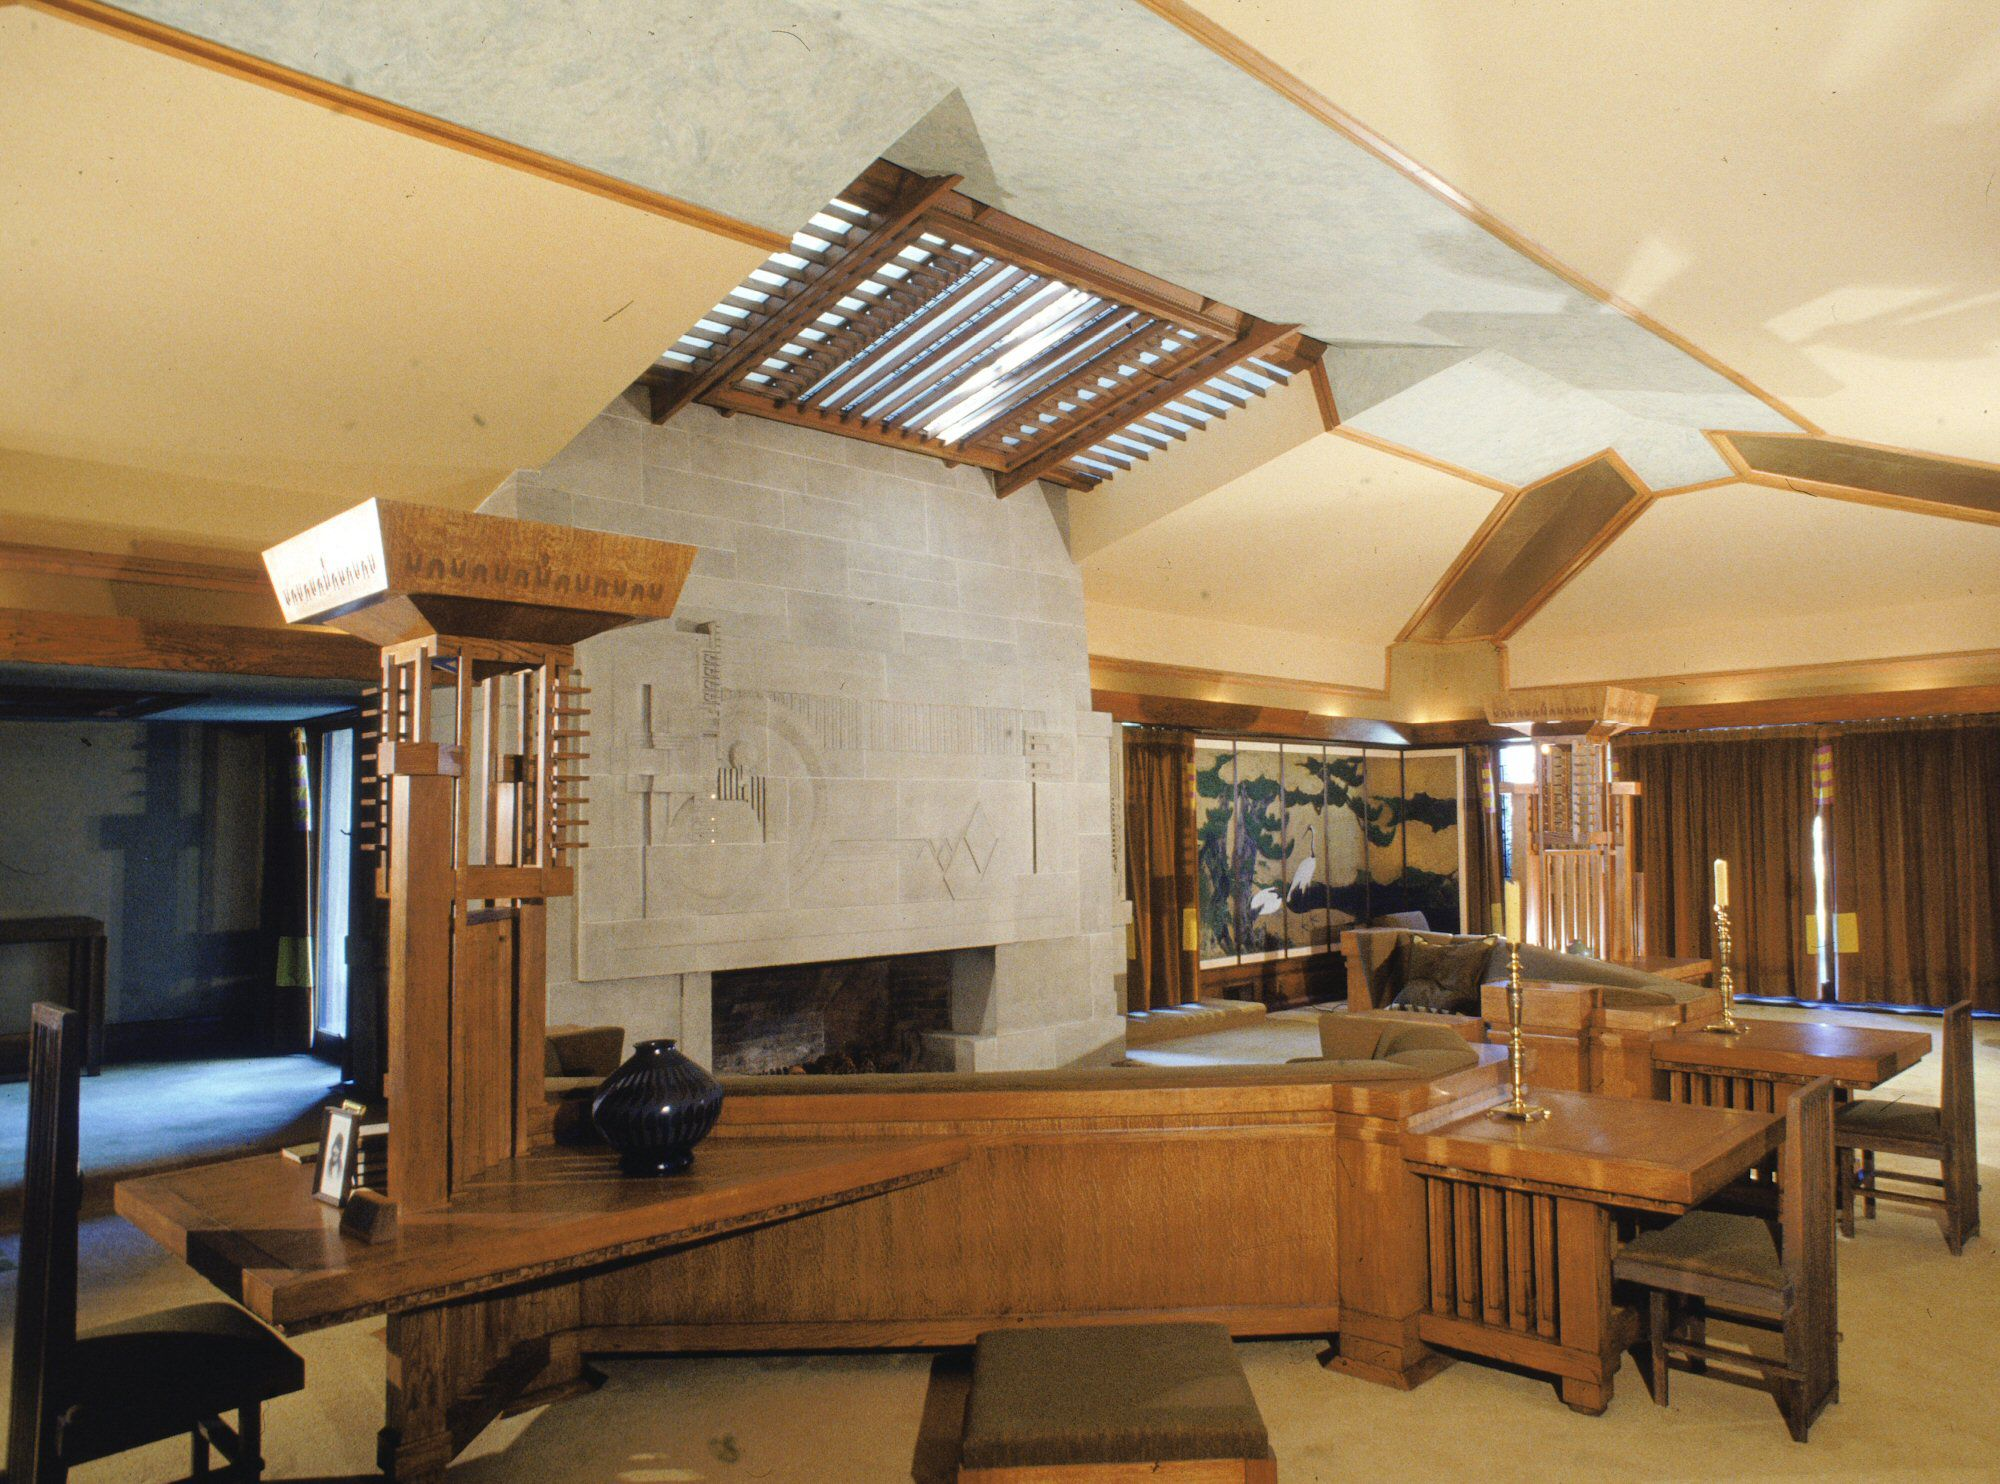 frank lloyd wright home interiors wright s architecture of space and interior designs 23770